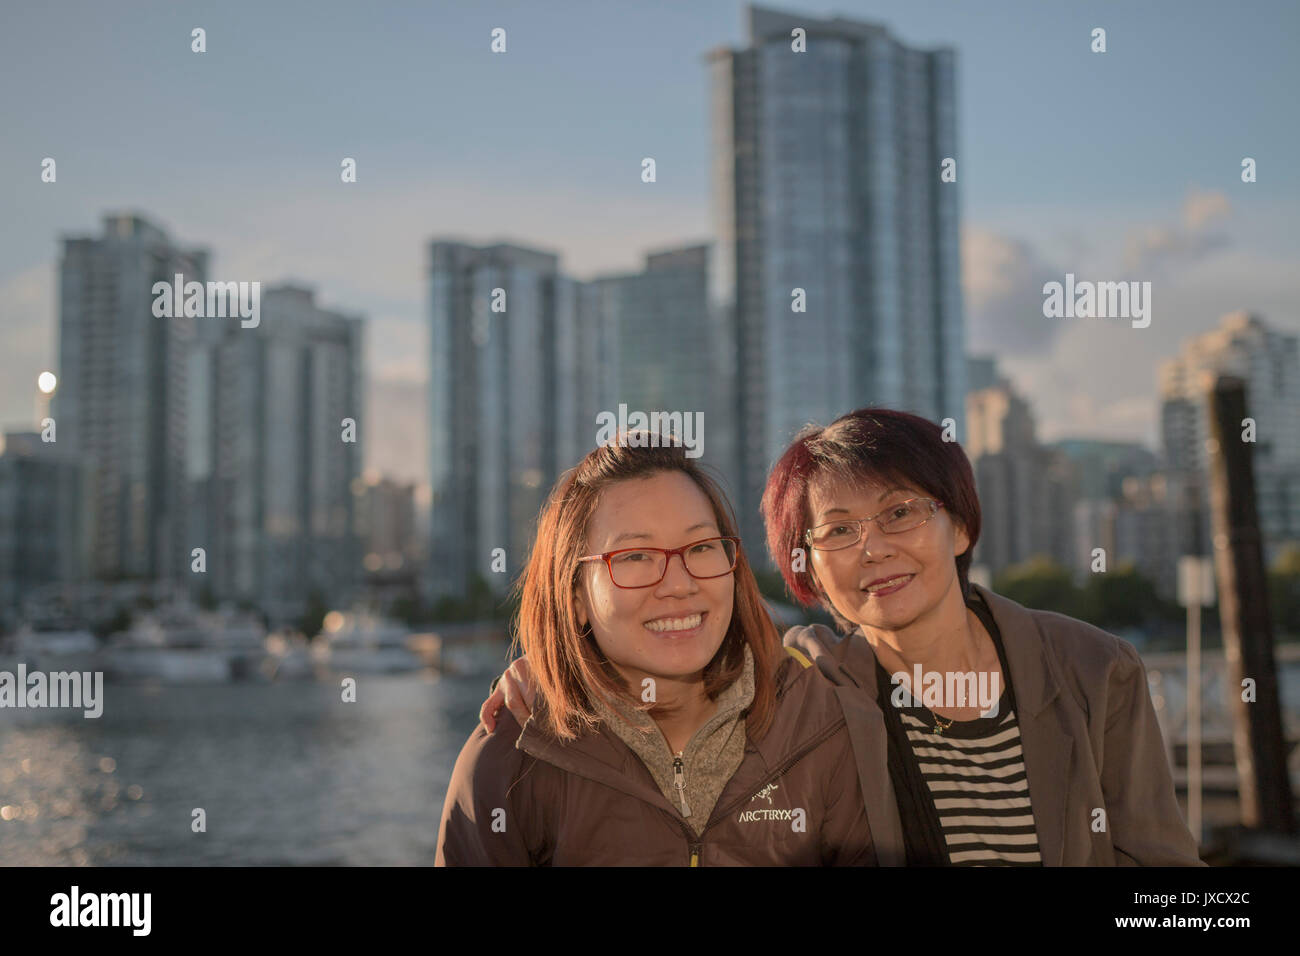 mother and daughter enjoying themselves together with a backdrop of city and sea. - Stock Image